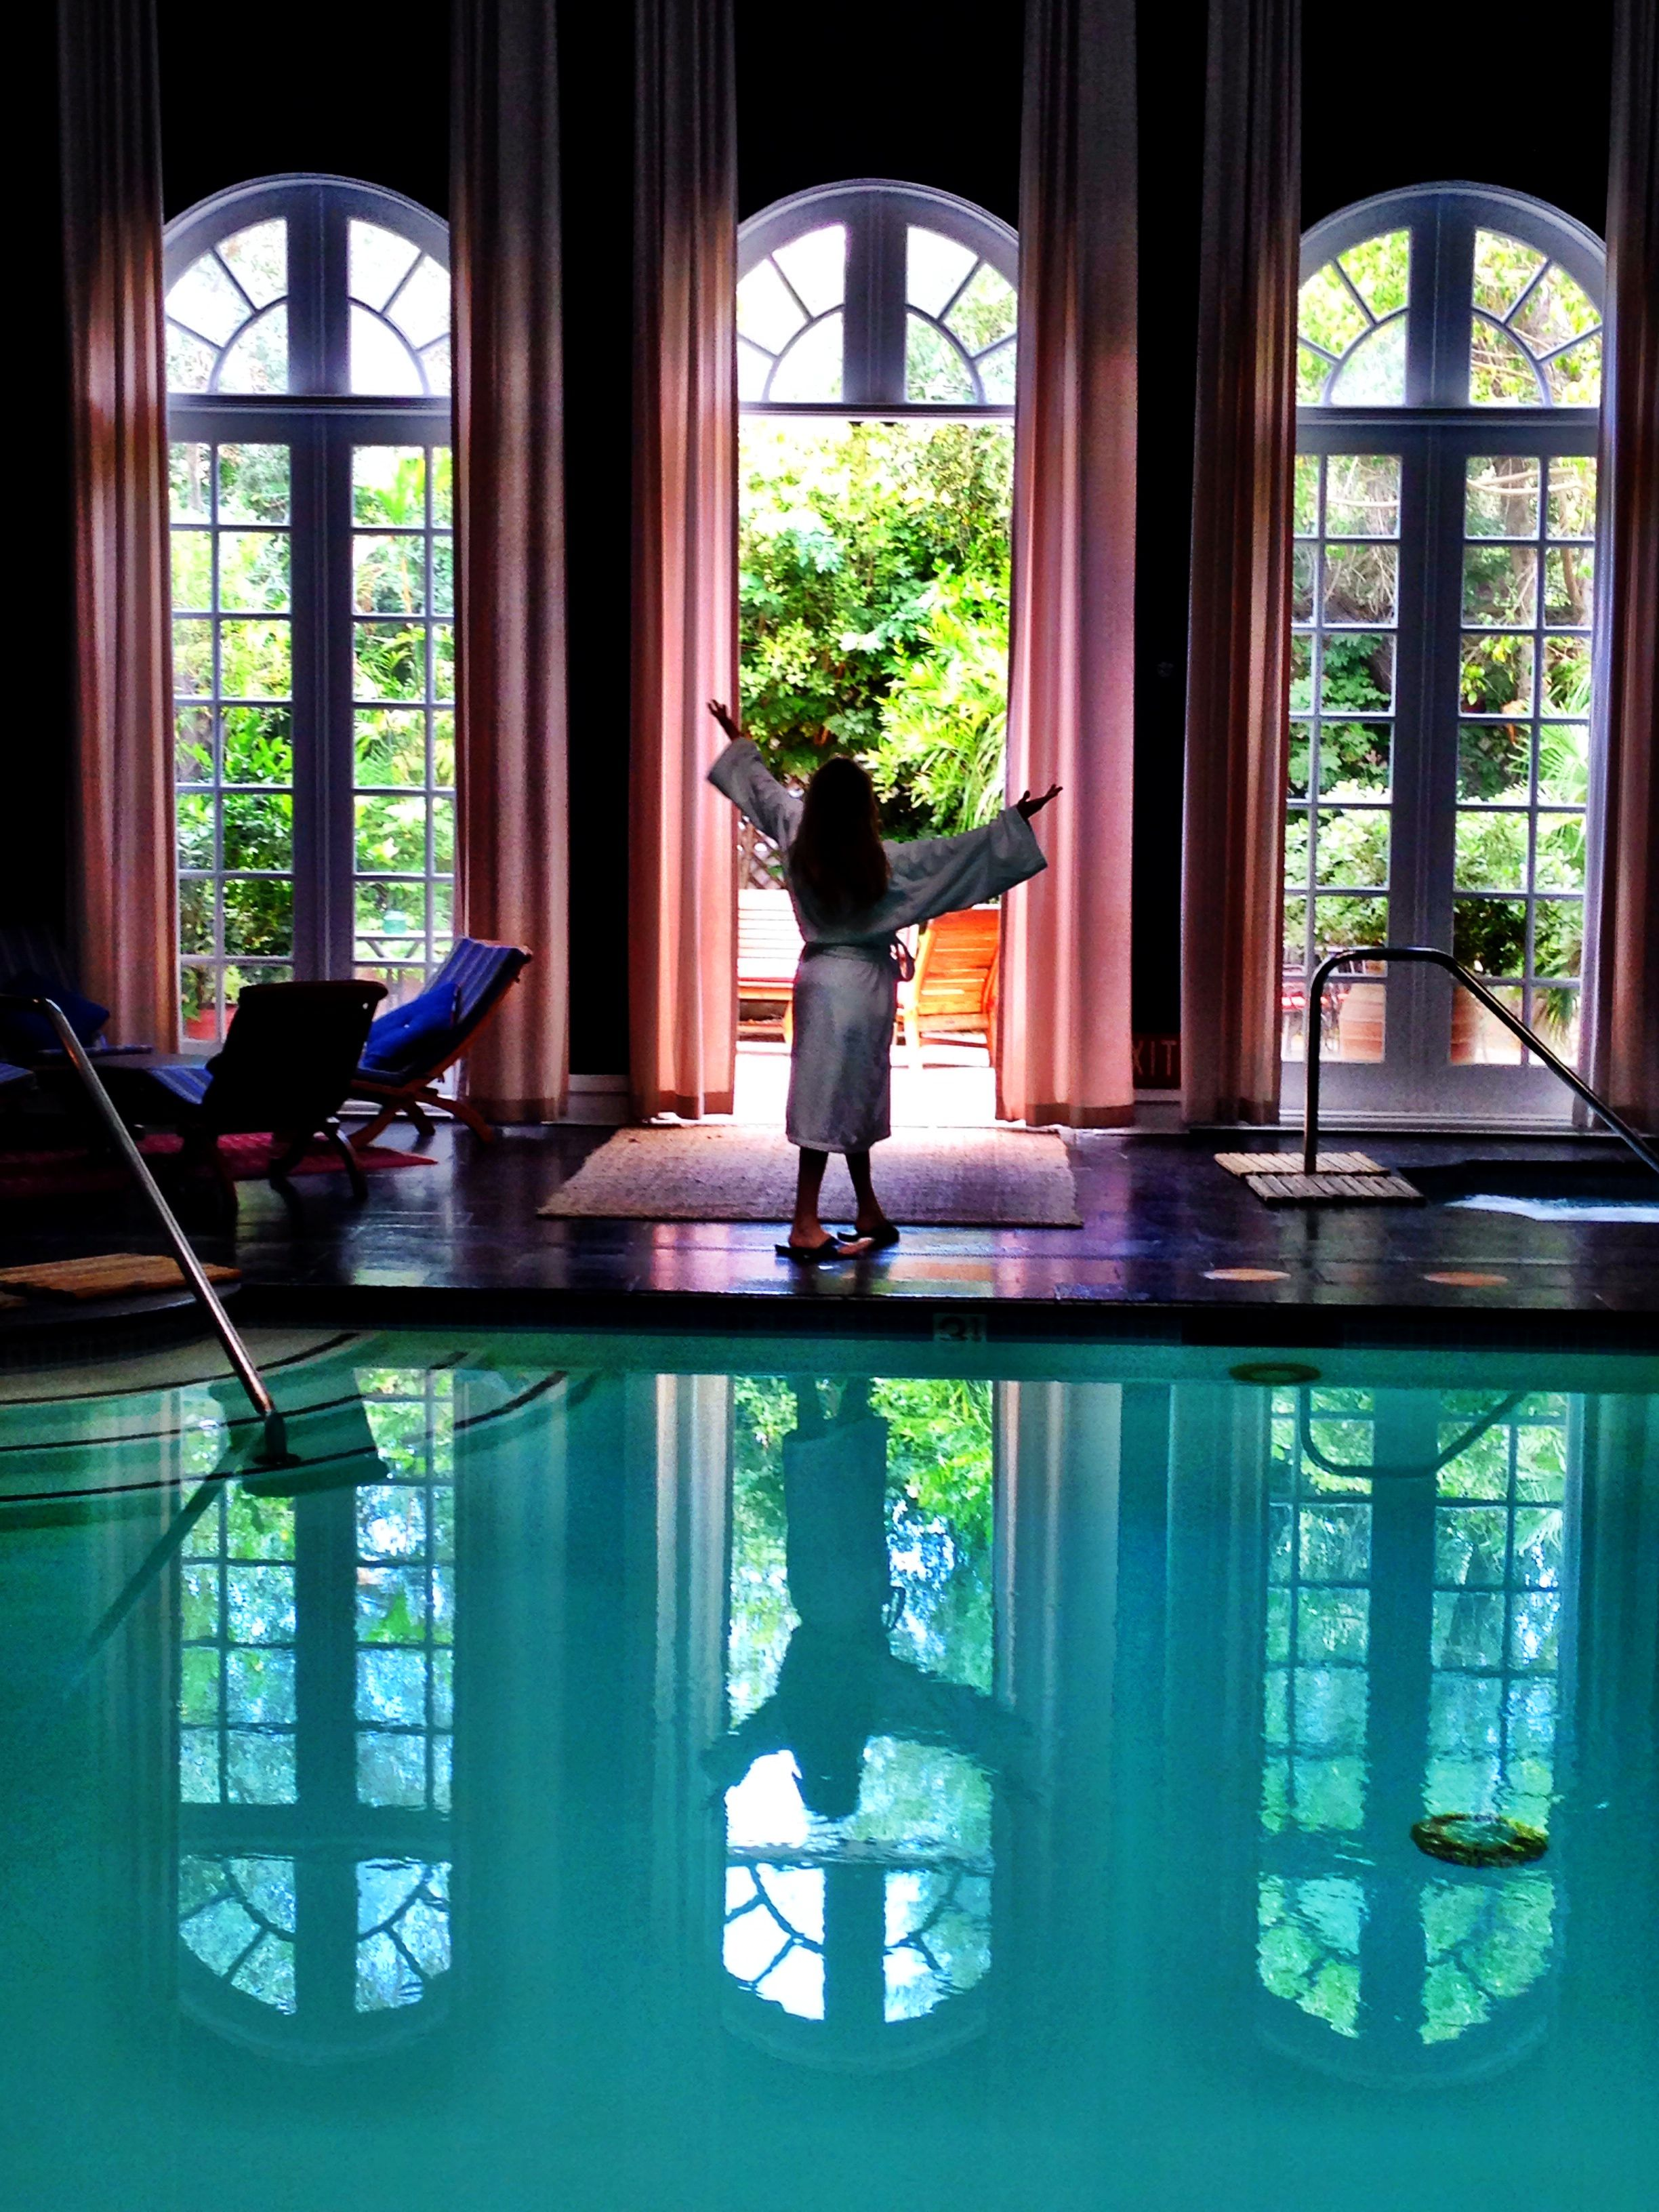 Glorious Spa Day Parkerpalm Indoor Pool Palmsprings Travel California